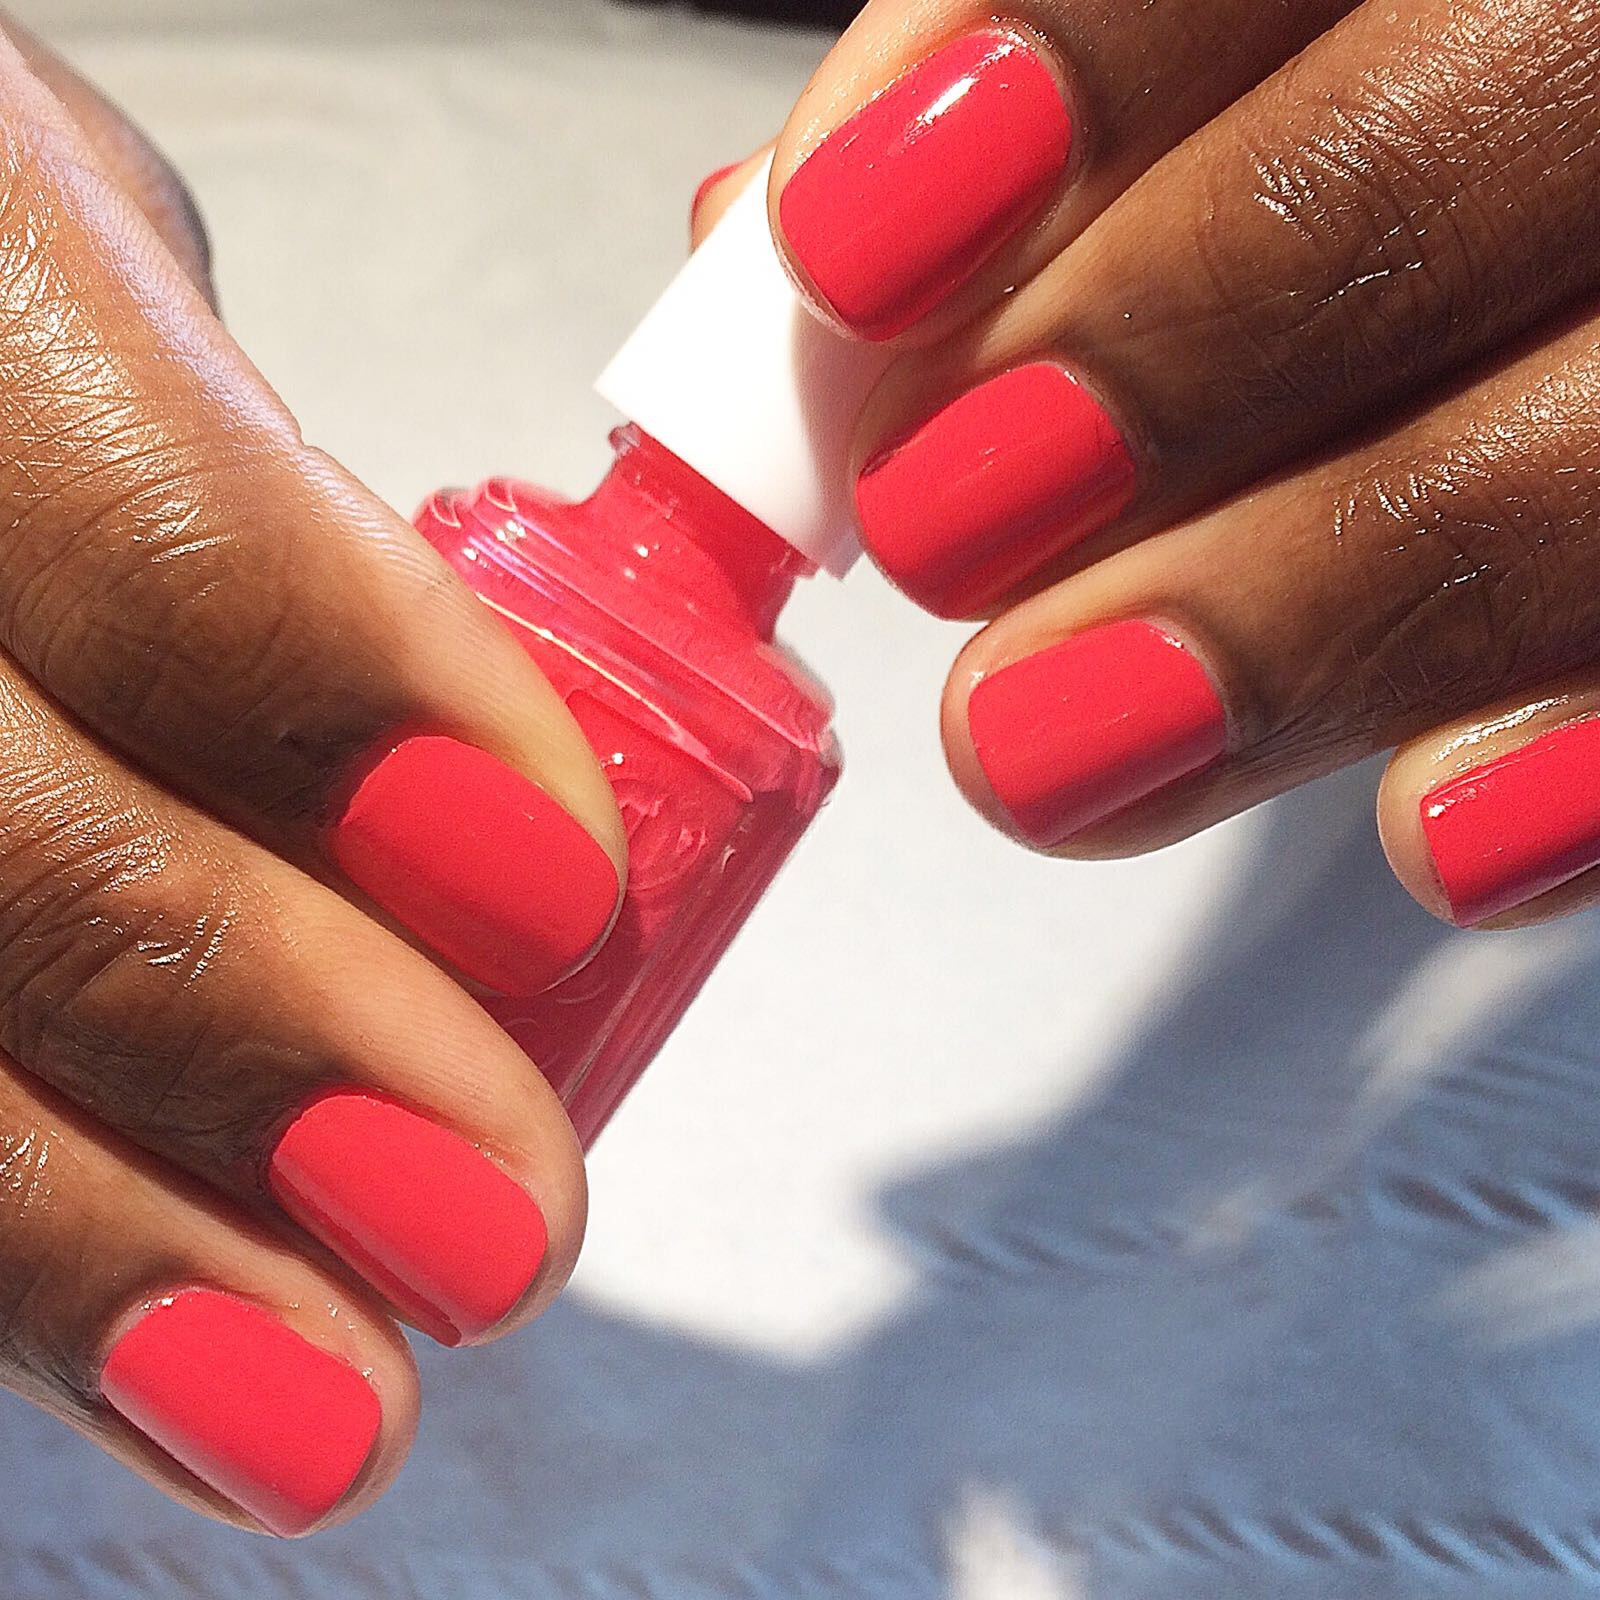 Nail extension aftercare: How to take care of your gel and acrylic